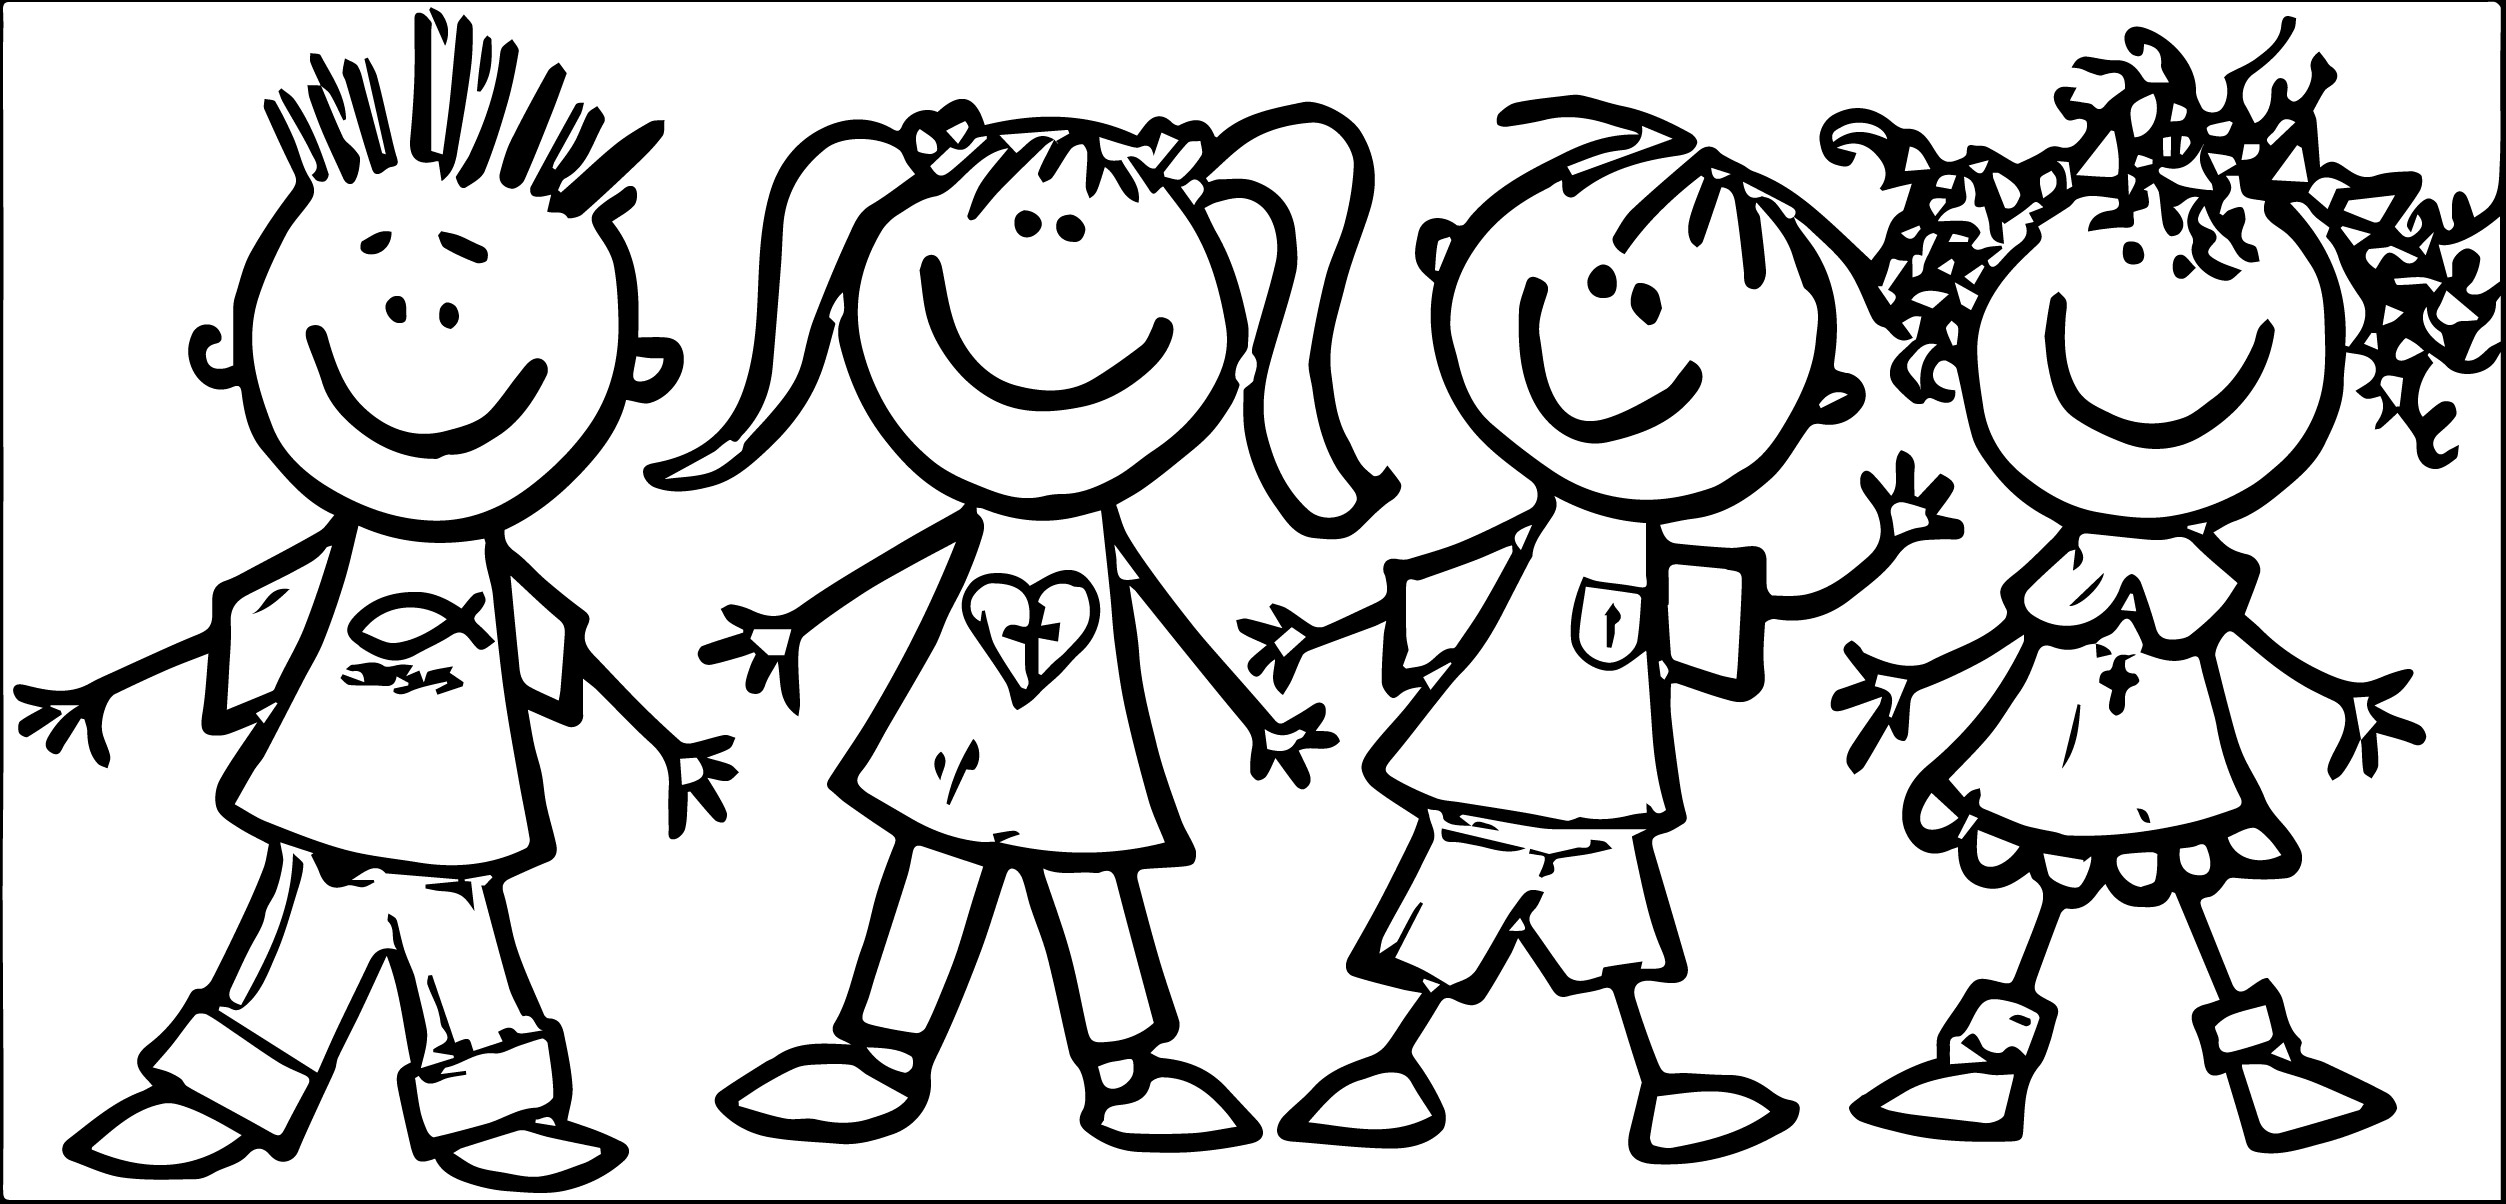 coloring kids clipart free kids helping each other coloring page download free clipart kids coloring